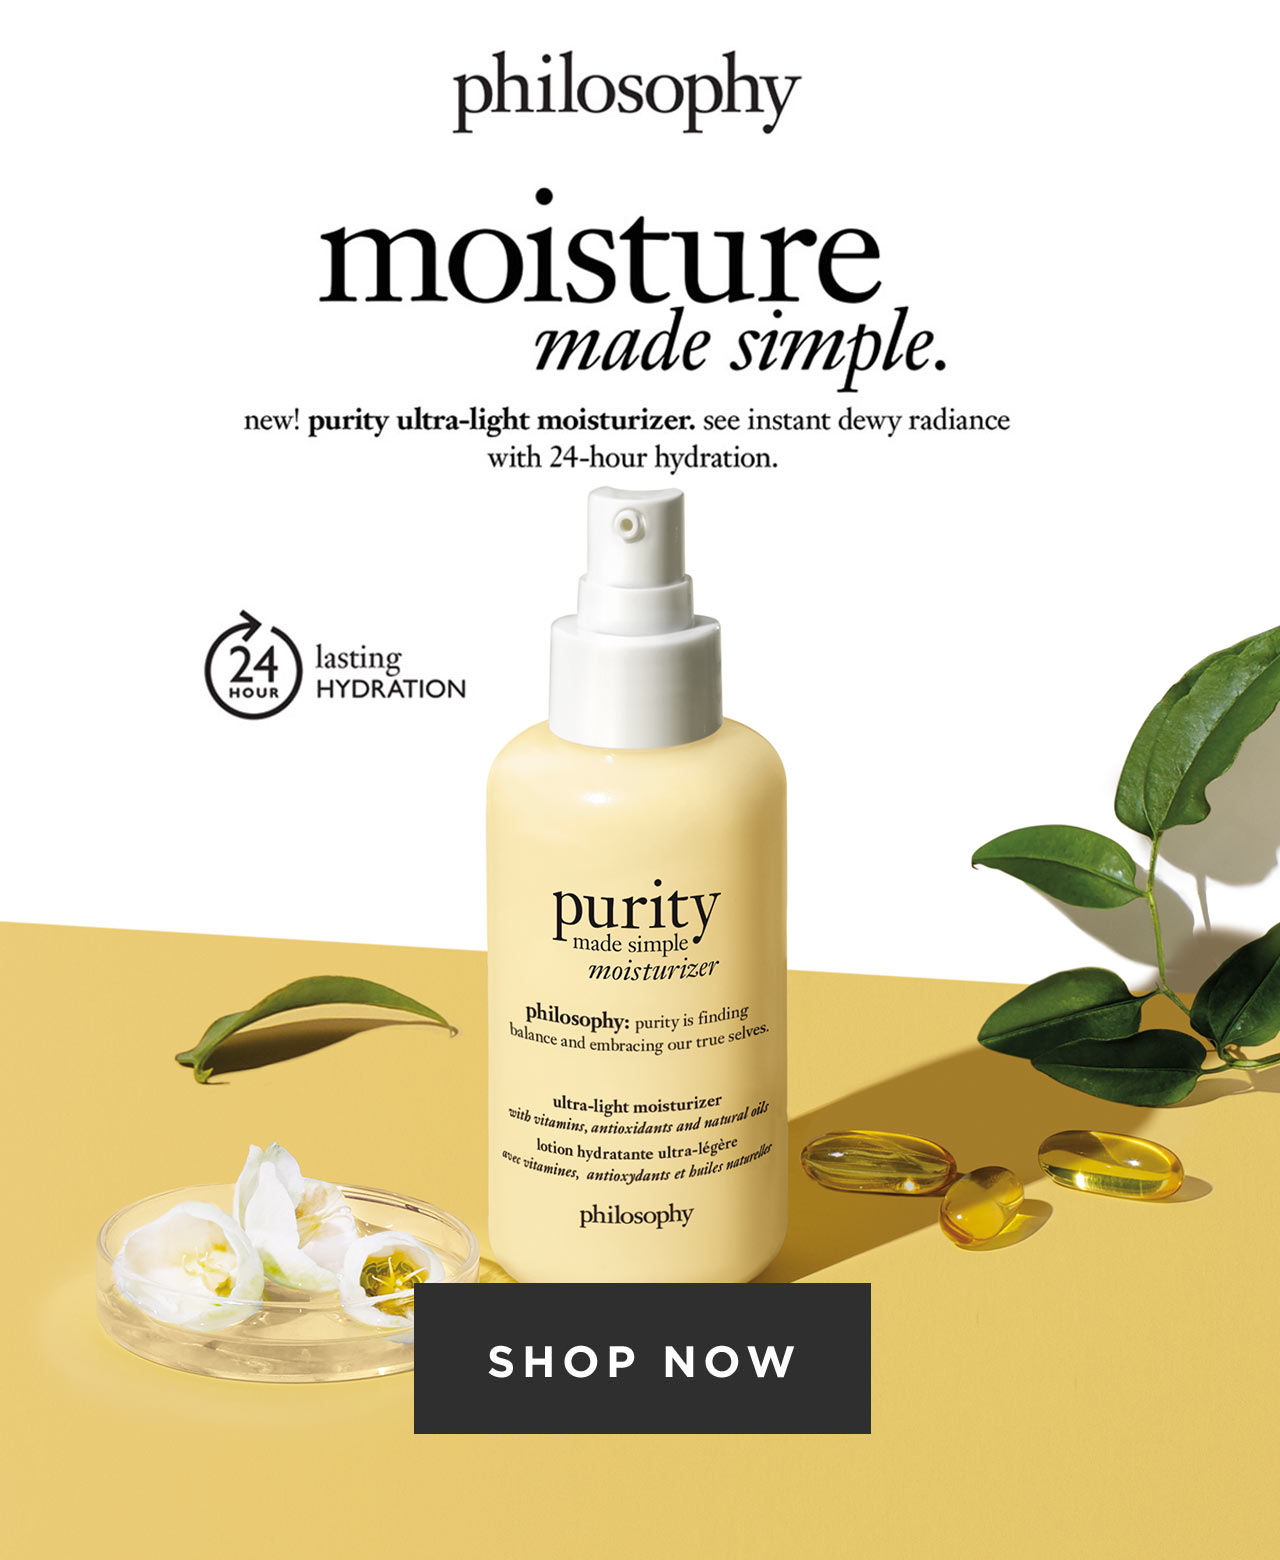 Philosophy moisture made simple. New purity ultra-light moisturizer. Shop now